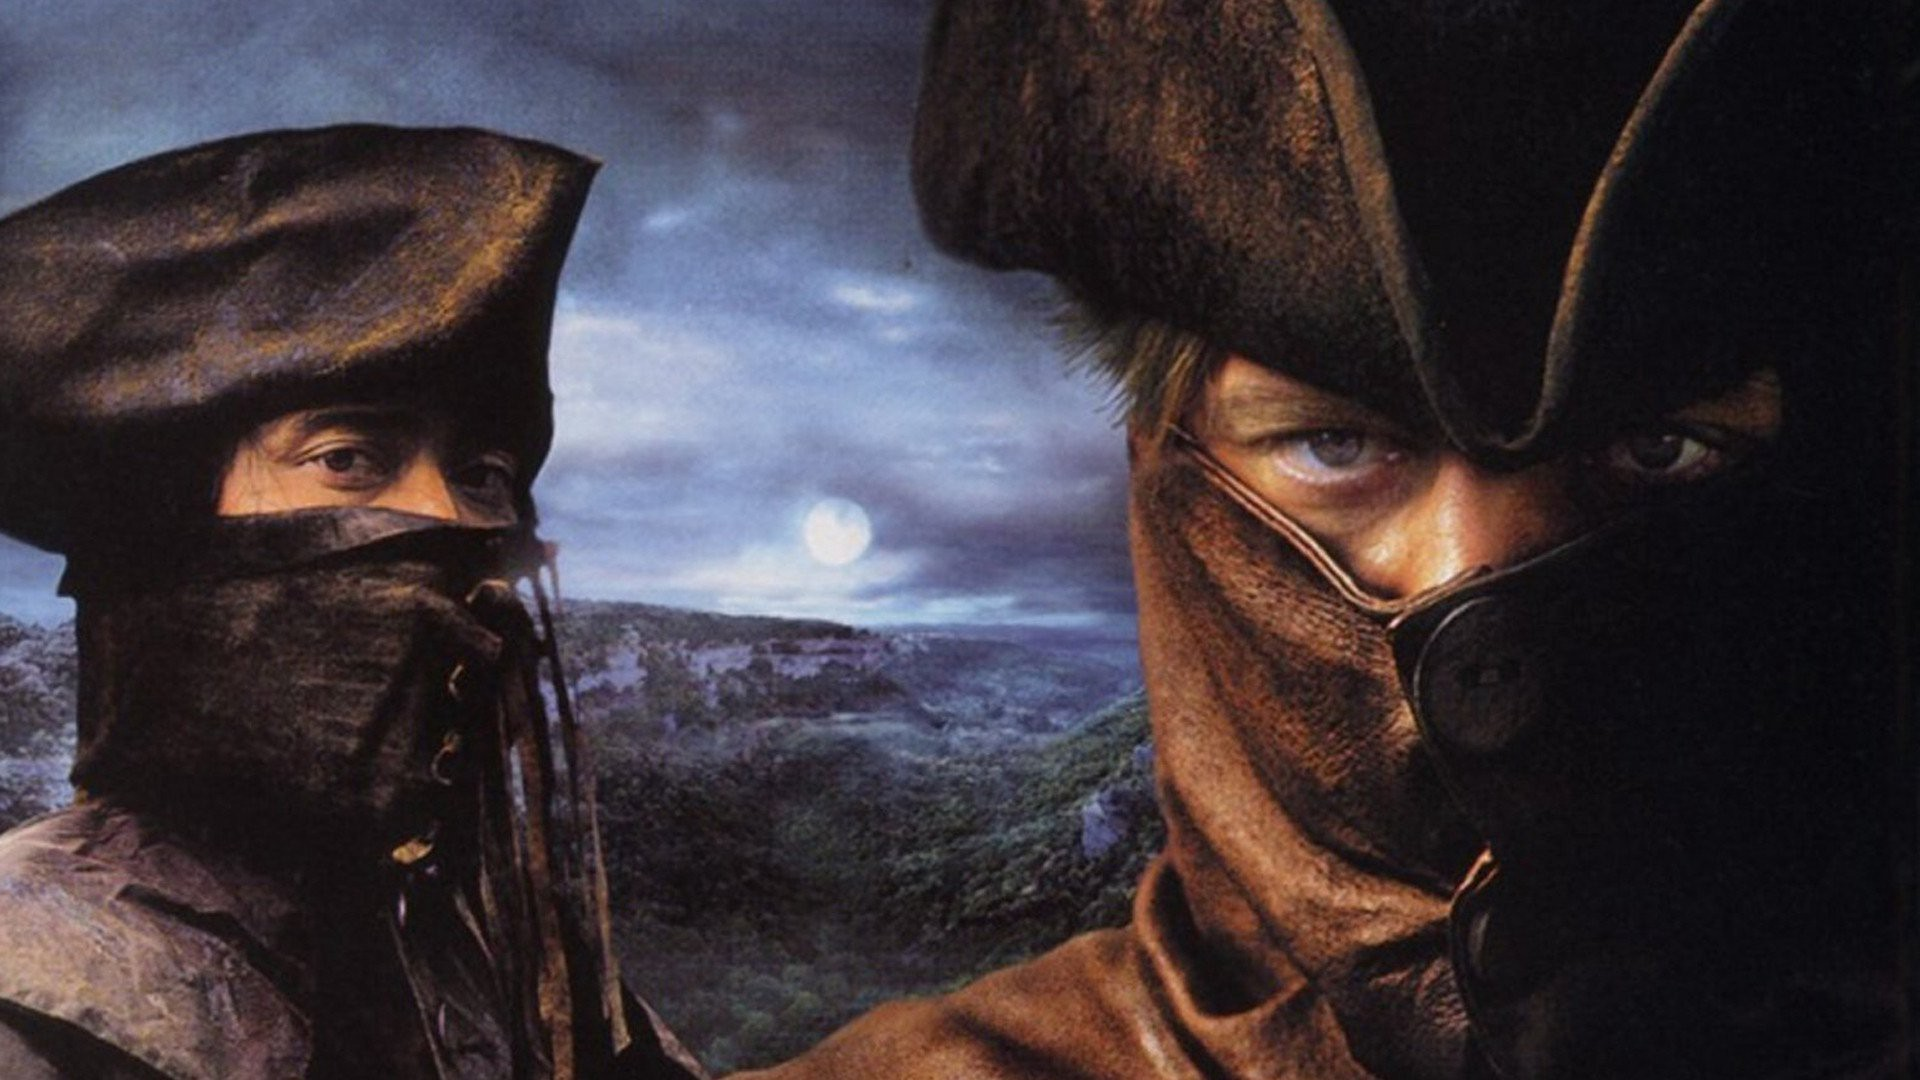 Poster of Brotherhood of the Wolves. Samuel Le Bihan and Marc Dacascos are both covered with high leather neck and hat.